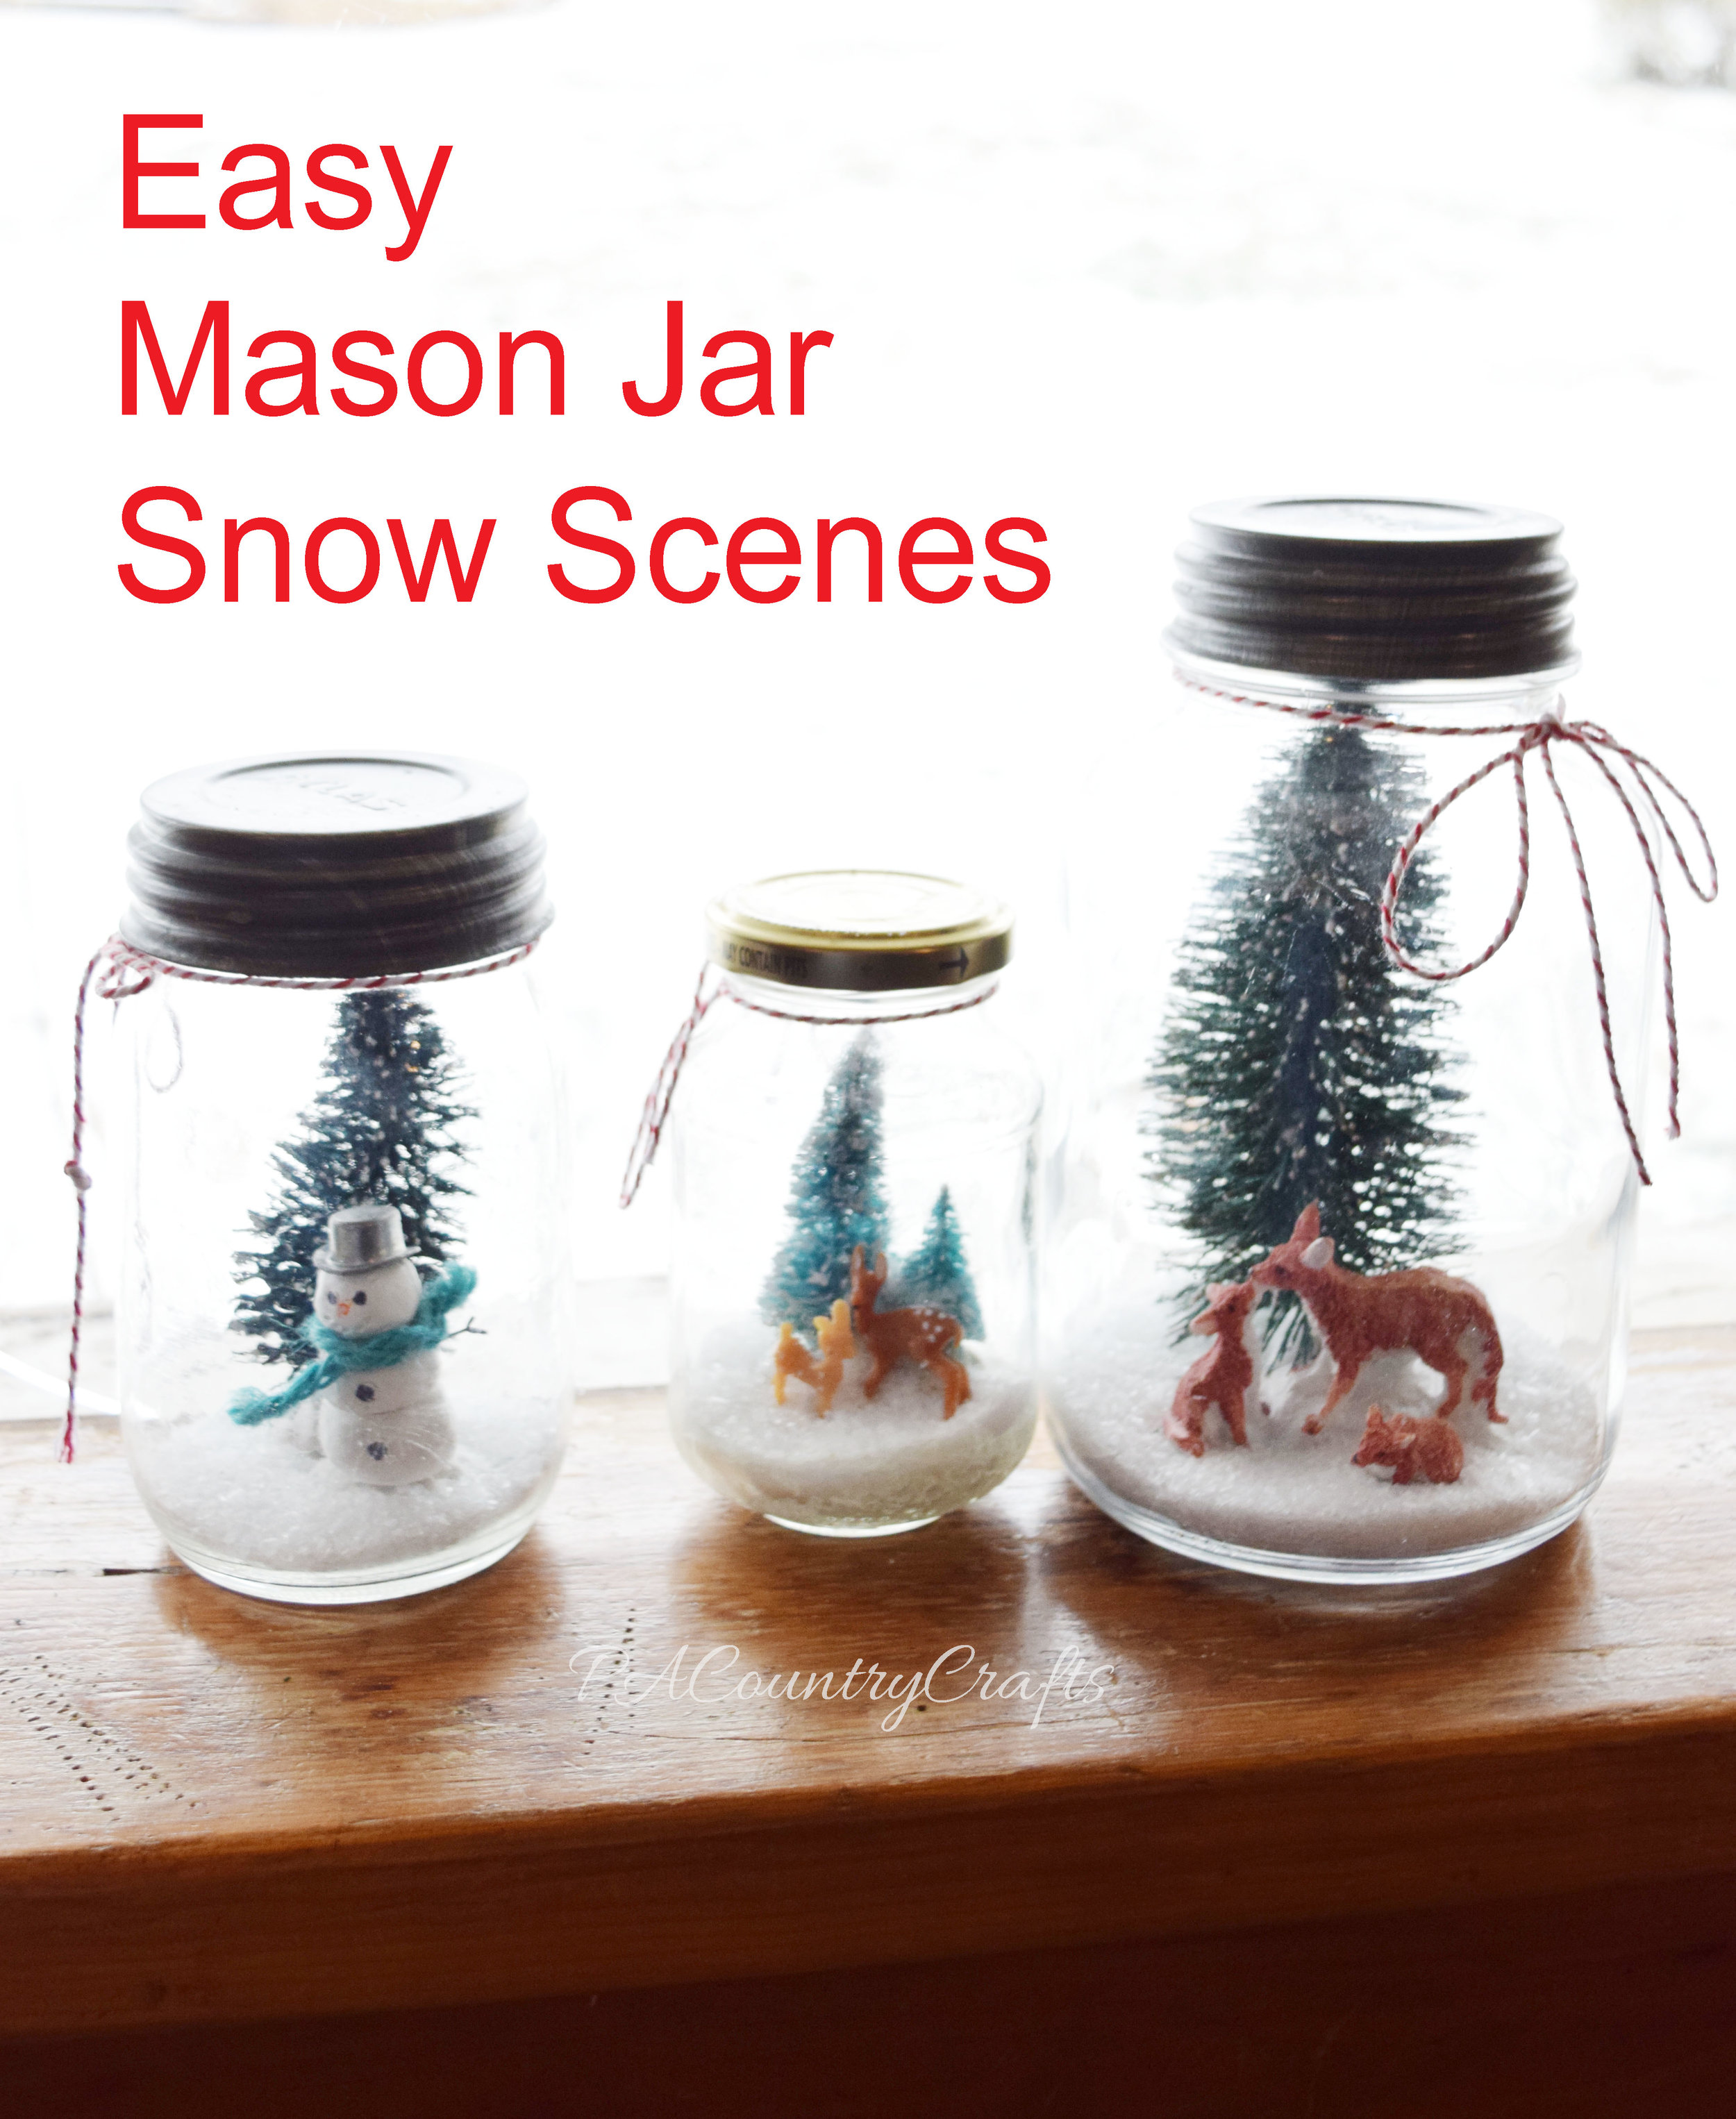 Easy Mason Jar Snow Scenes